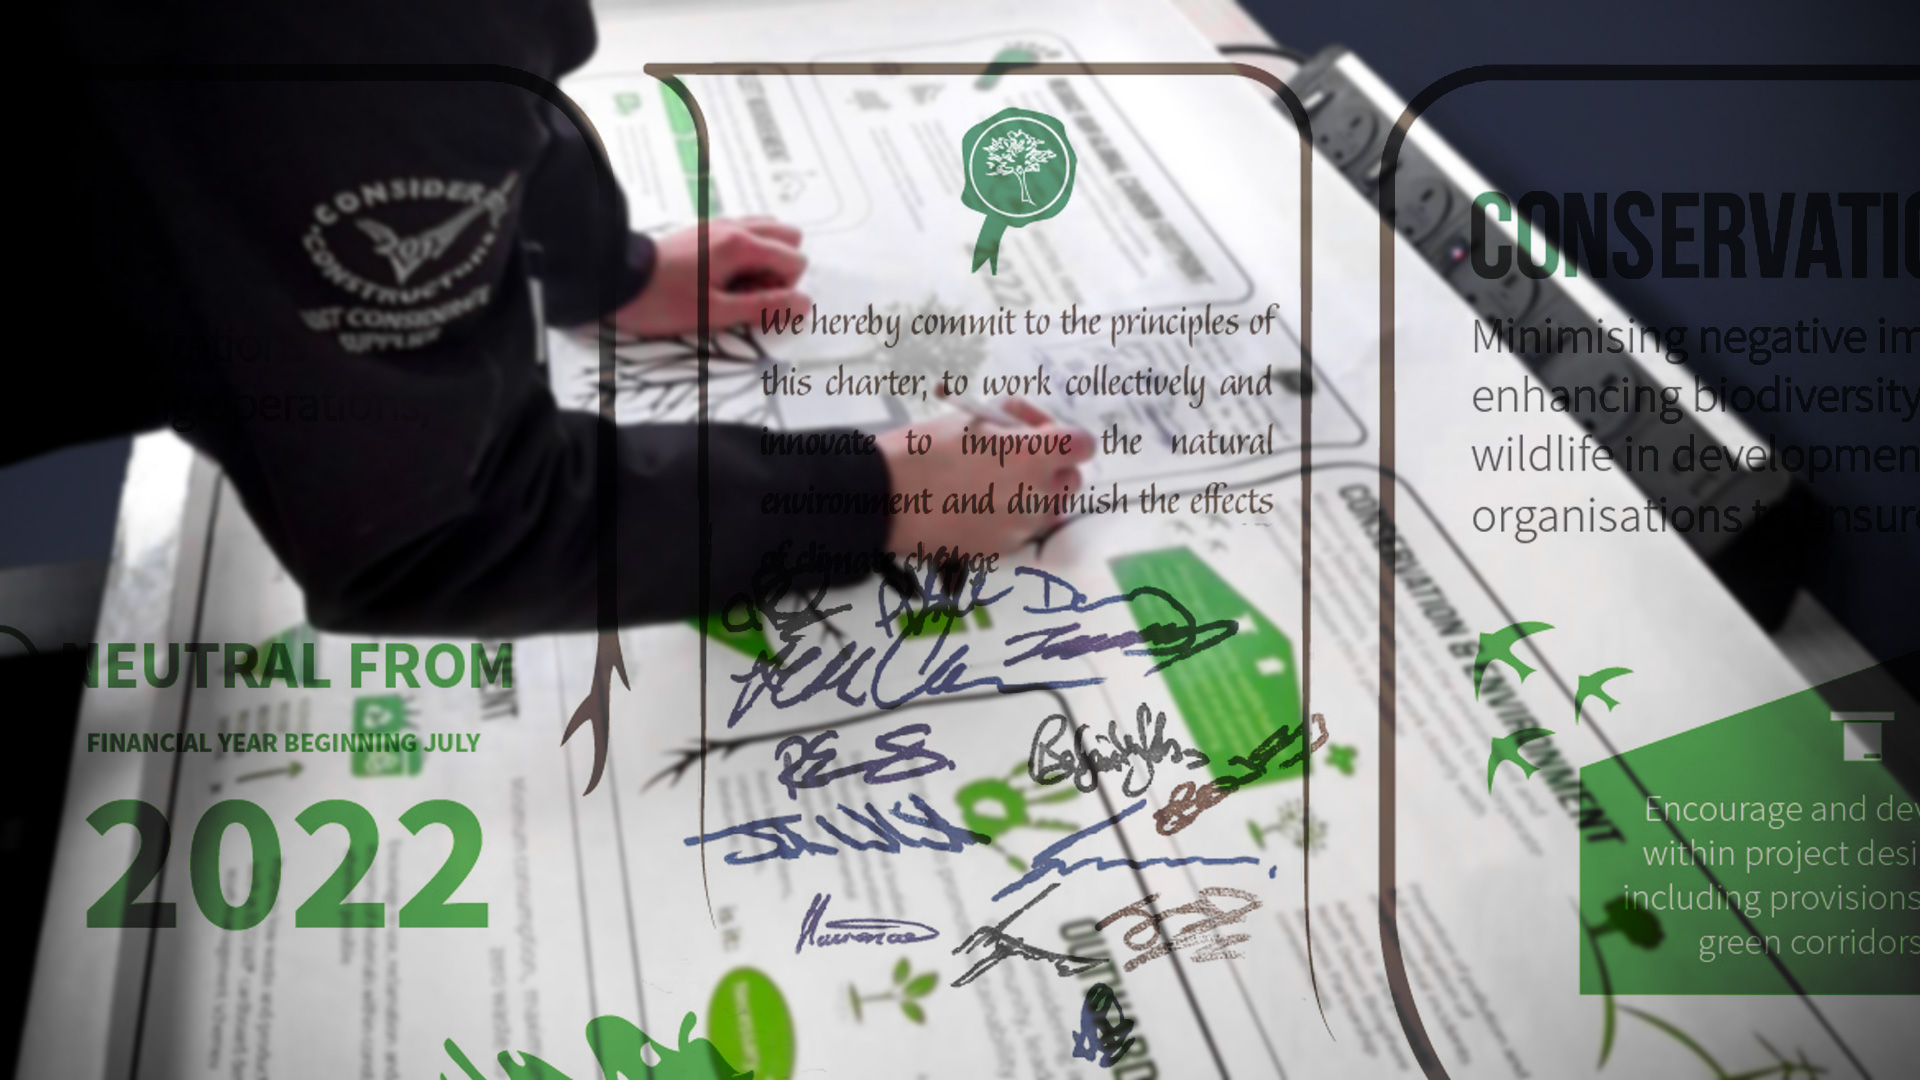 TCi Sustainability Charter commitments signed!